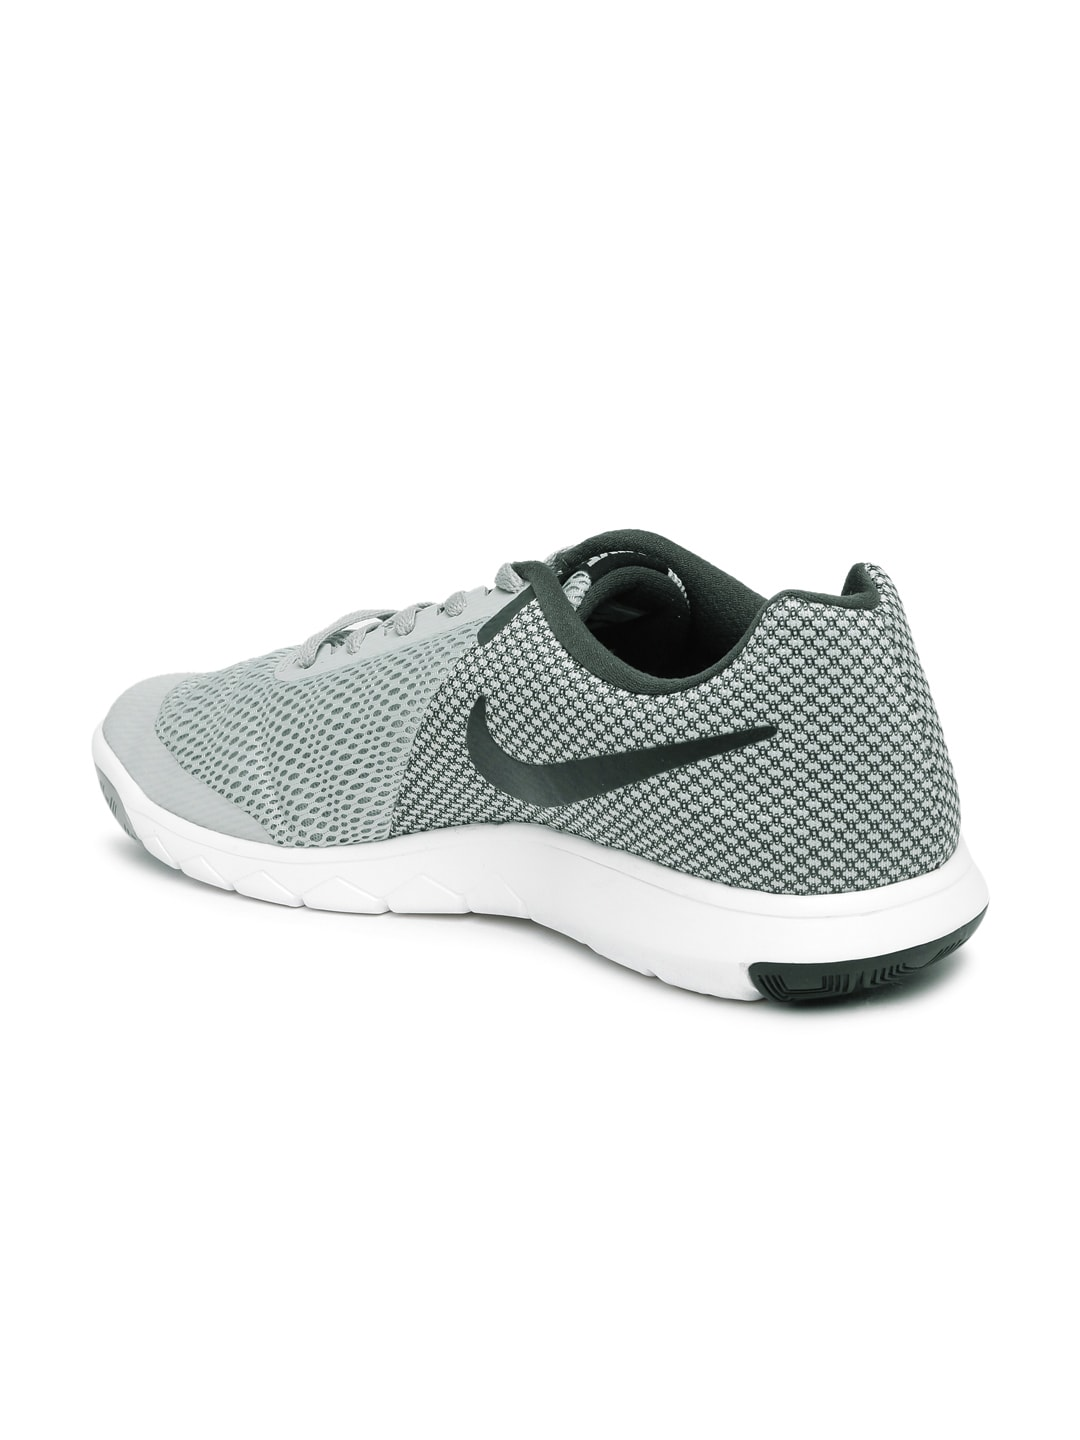 nike grey sneakers. Nike Shoes - Buy ...